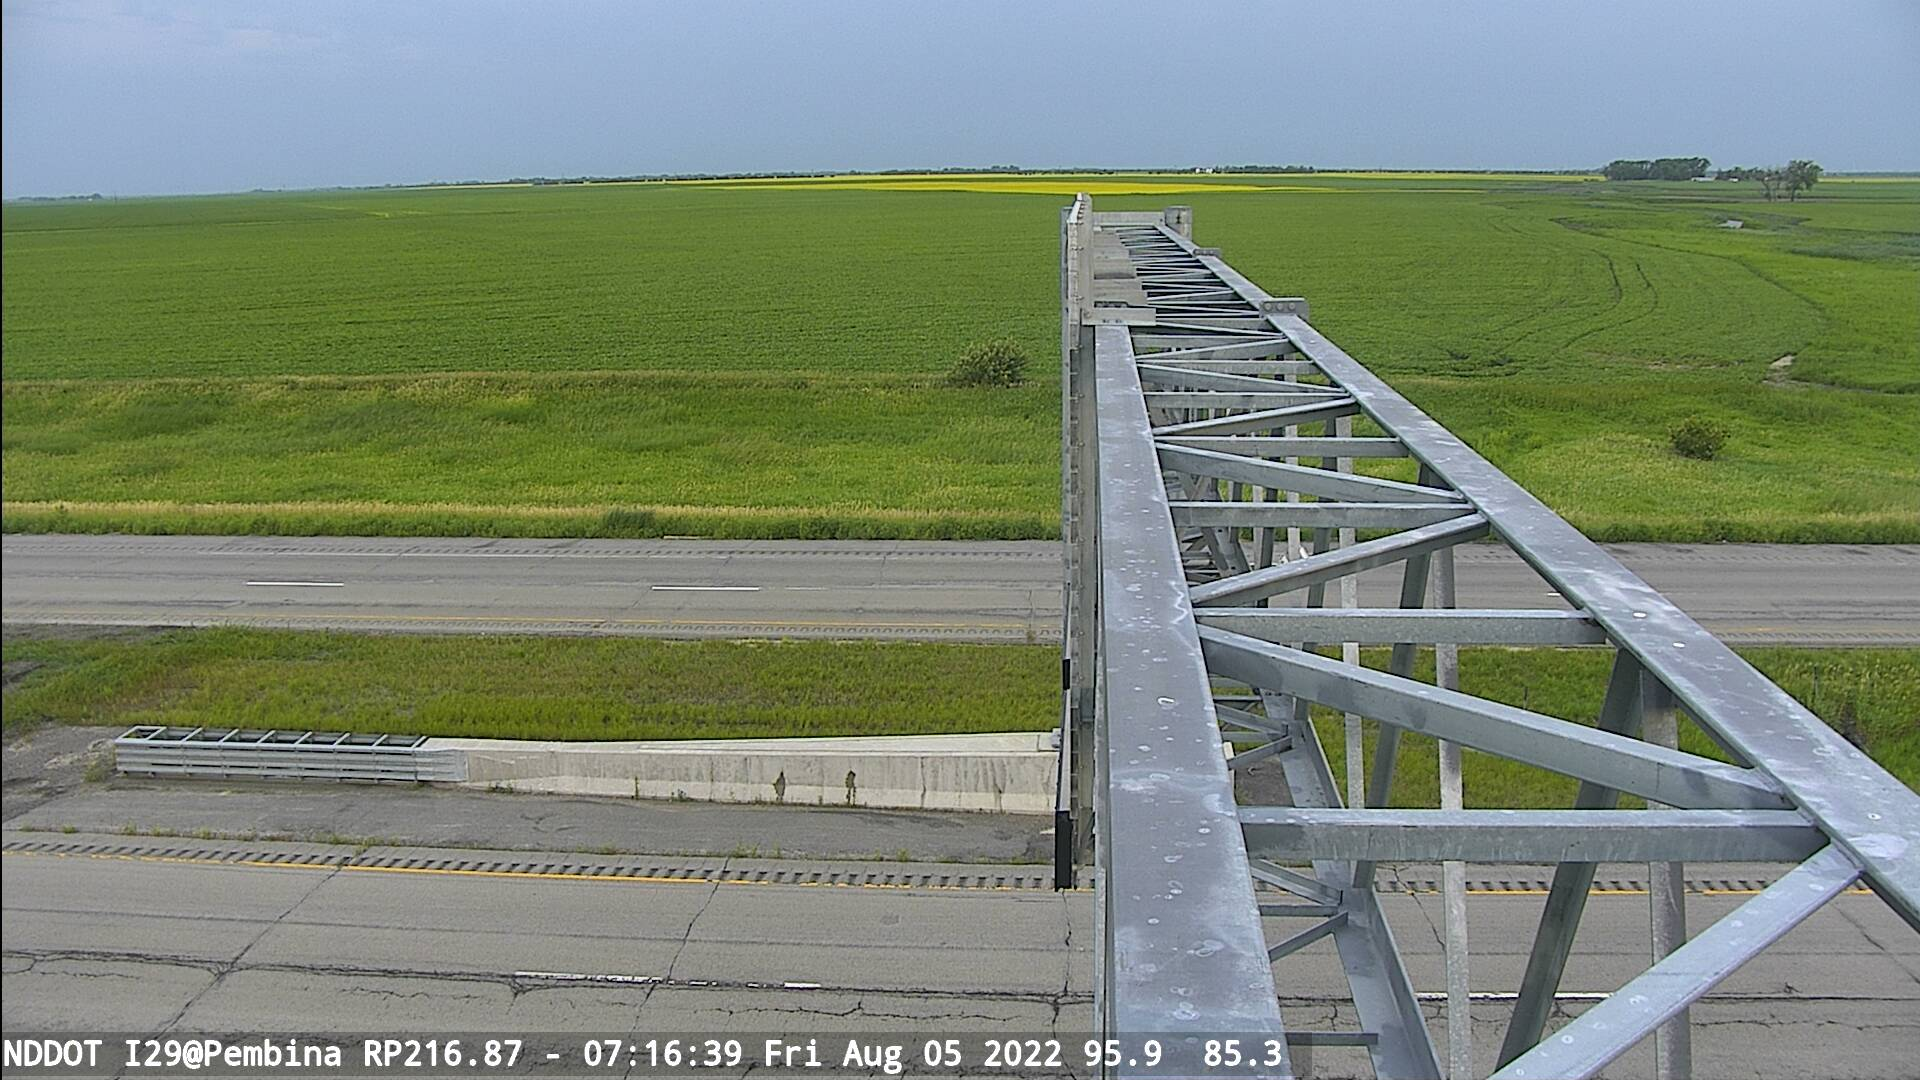 Port of Entry NB - West (I 29 MP 217) - NDDOT